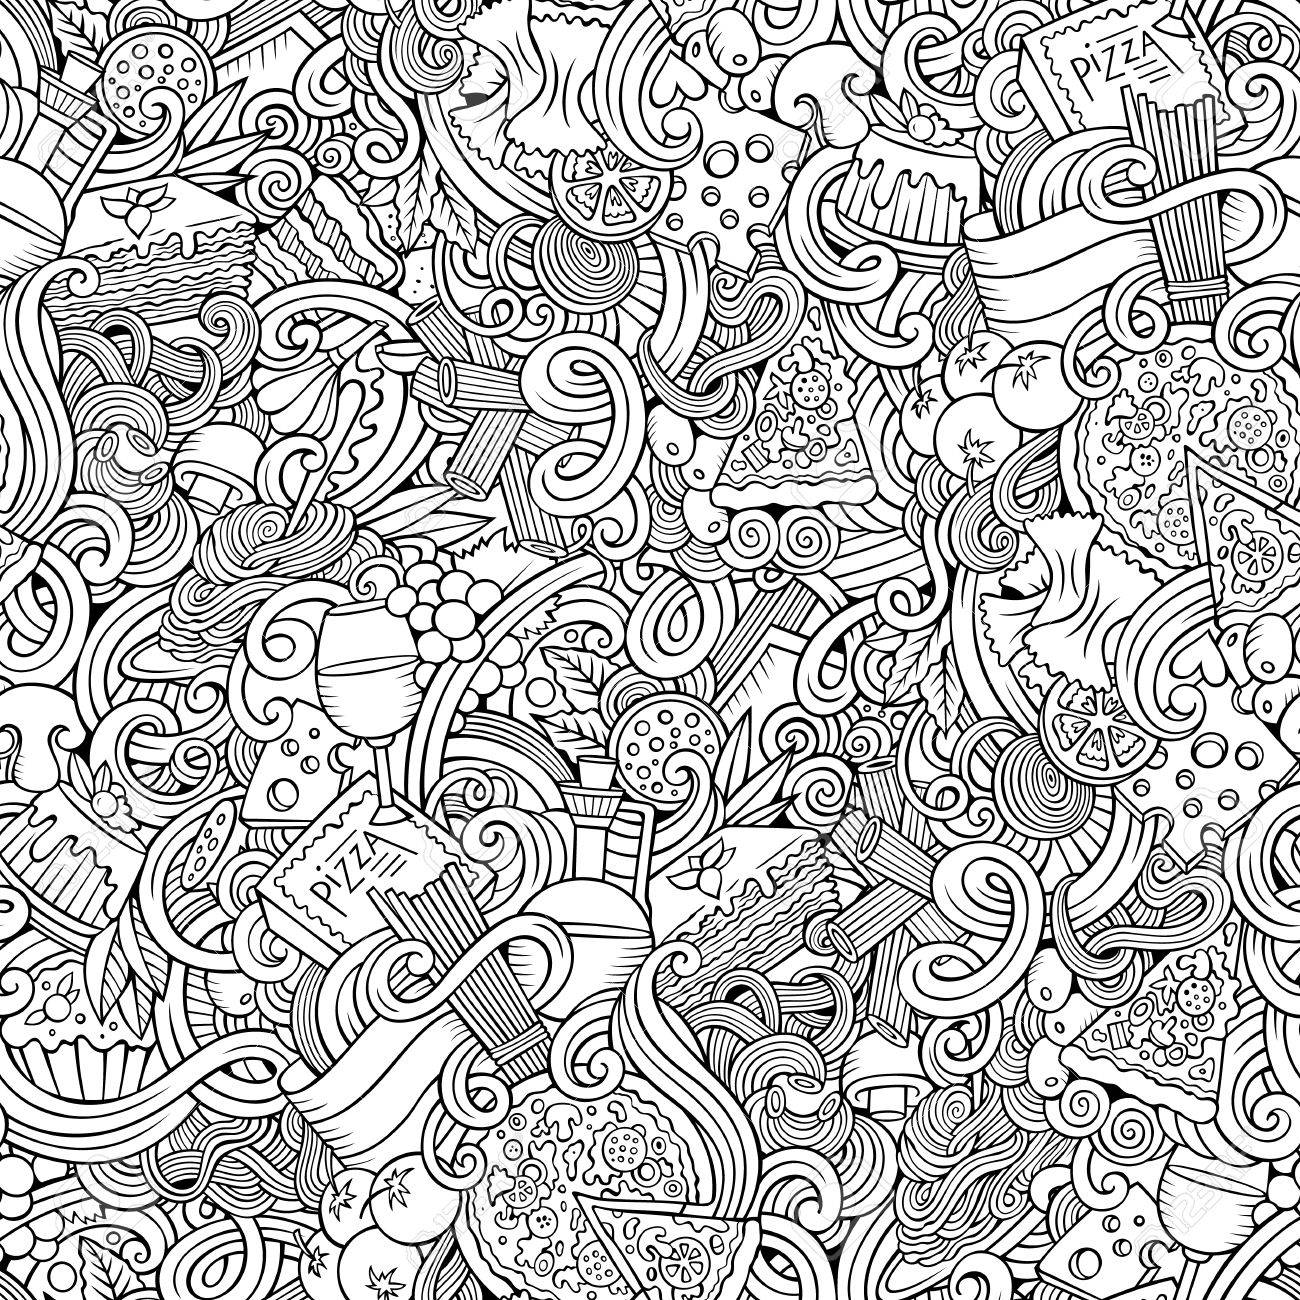 Cartoon hand-drawn doodles Italian cuisine seamless pattern. Line art detailed, with lots of objects vector background - 55176619